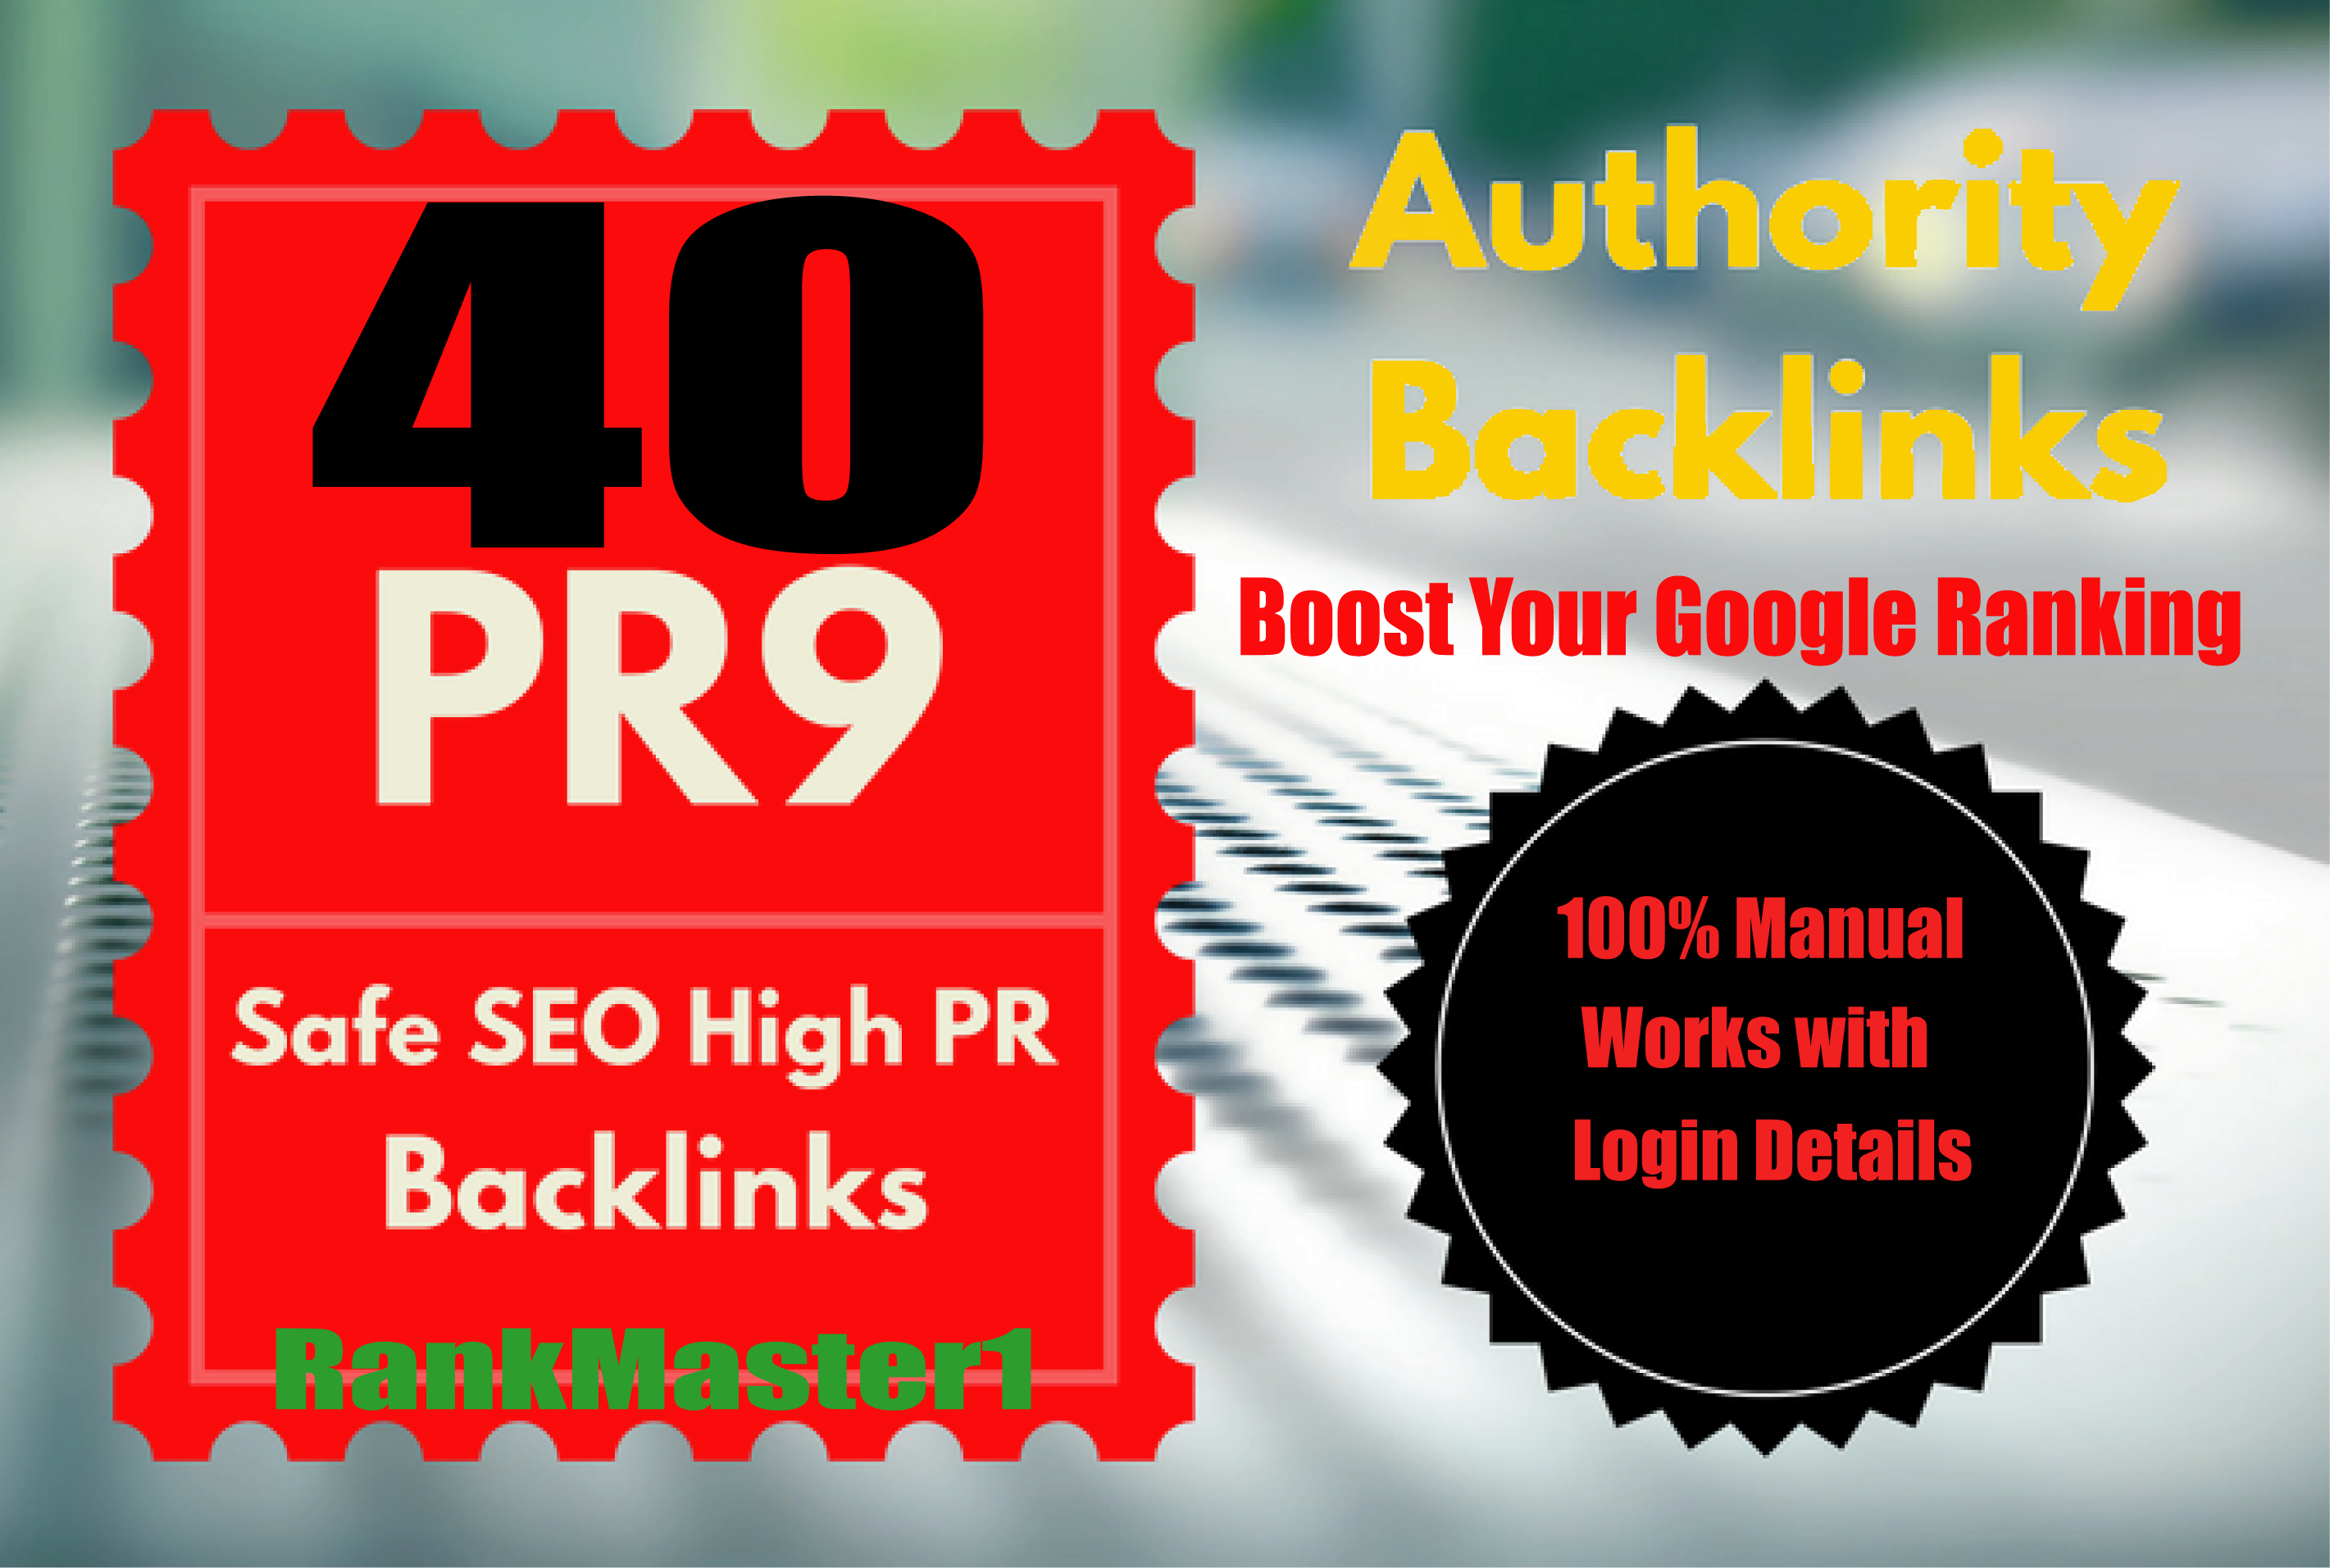 Build 40 PR9 DA 70-100 SEO Backlinks High Trust Authority Domain Permanent Links SERP Results